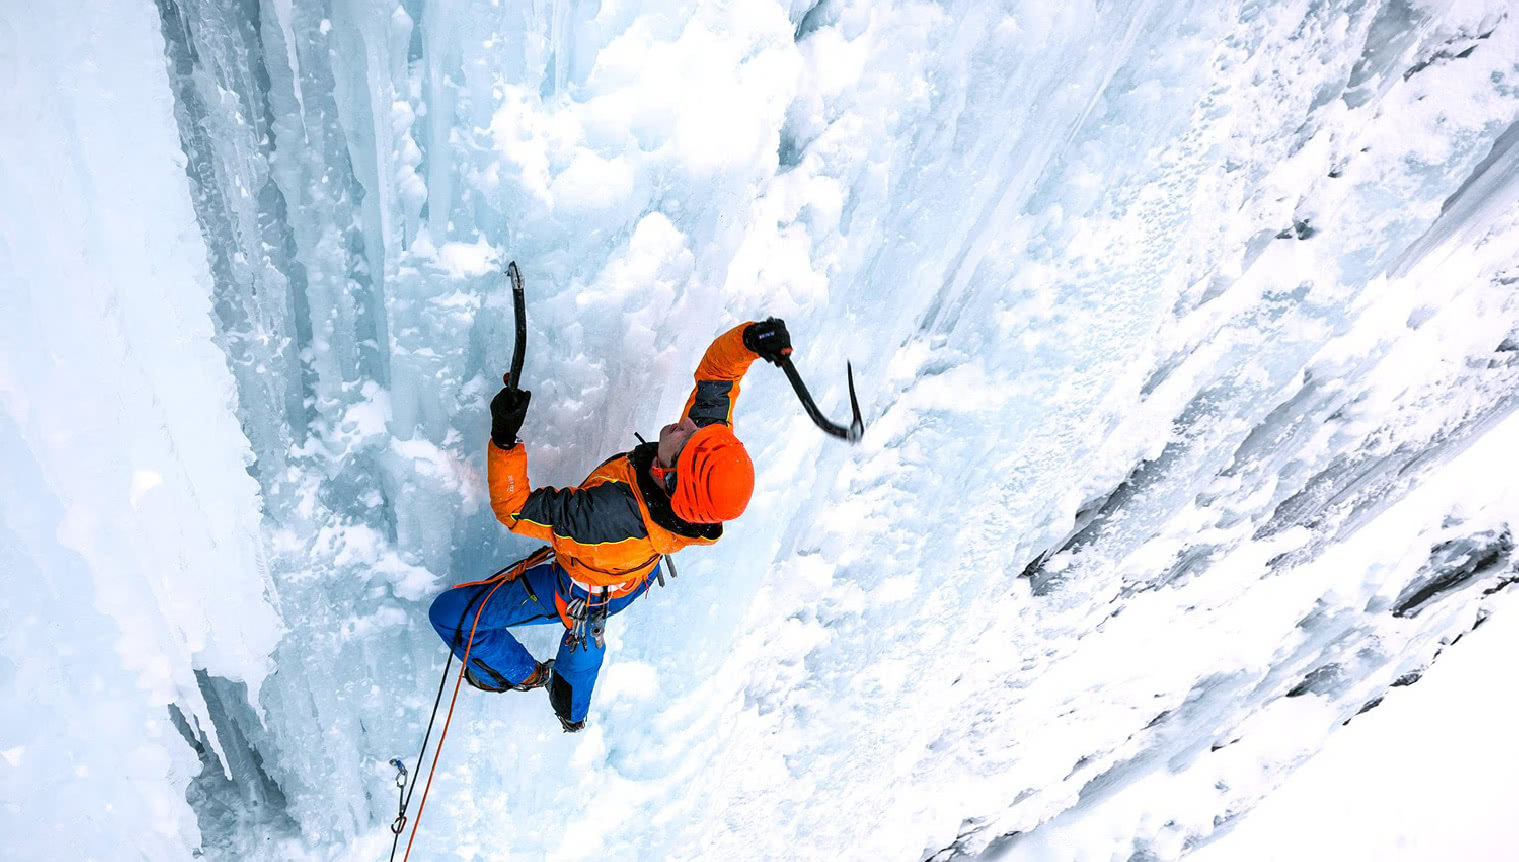 Technical socks for ice climbing